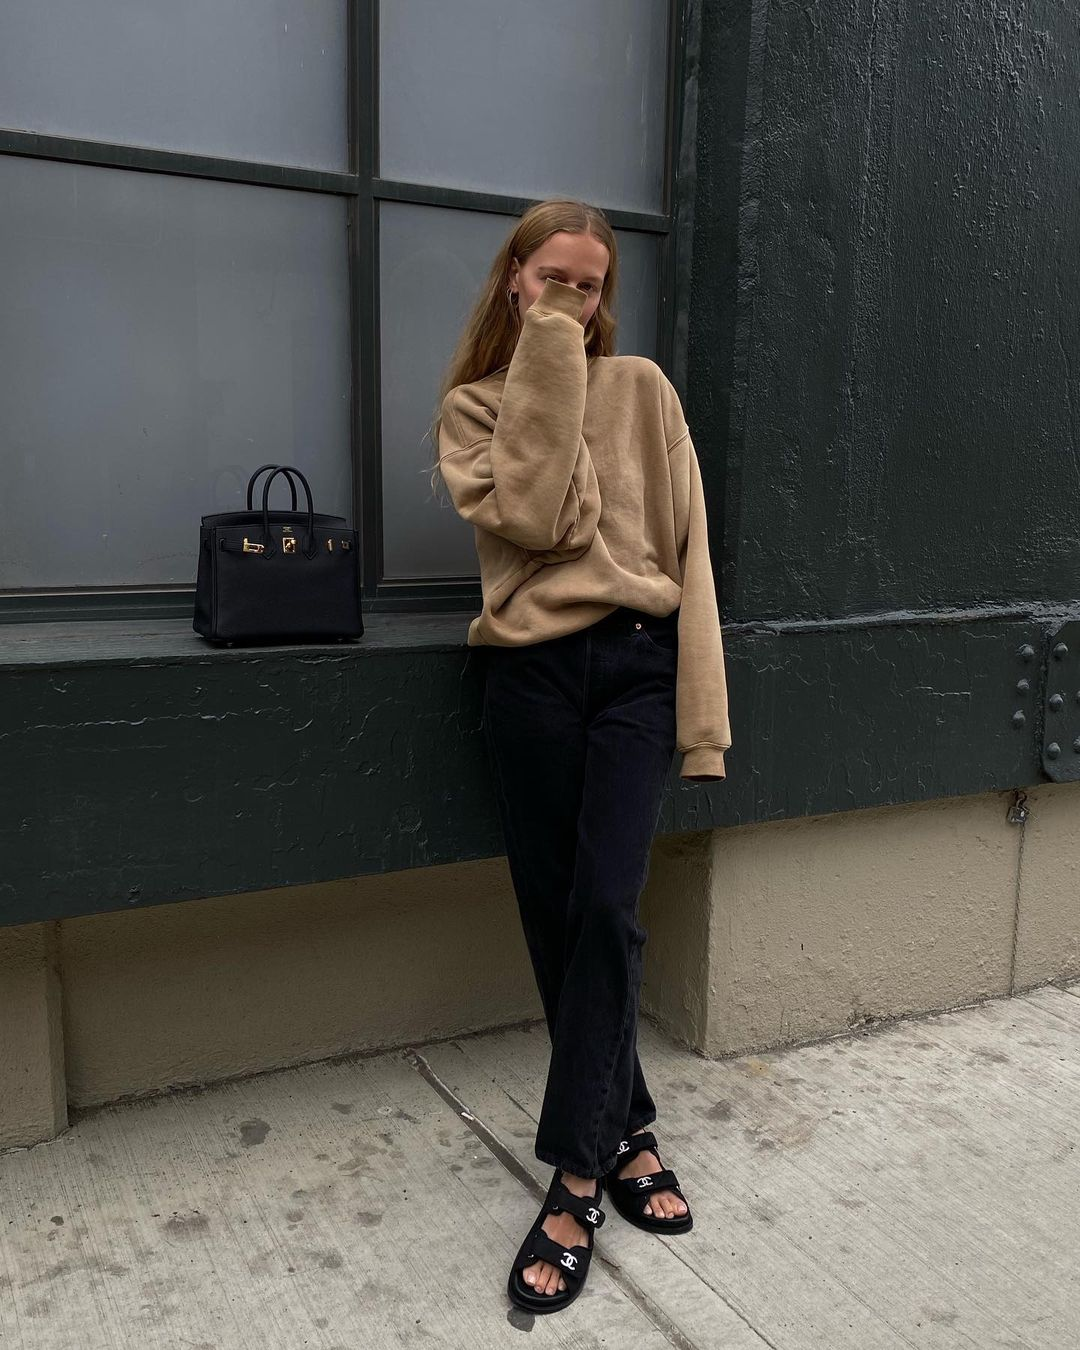 25 Basic Yet Cool Sweatshirts to Shop Now — Instagram outfit idea — @mvb Marie von Behrens in a tan sweatshirt, an Hermès bag, black jeans, and Chanel dad sandals